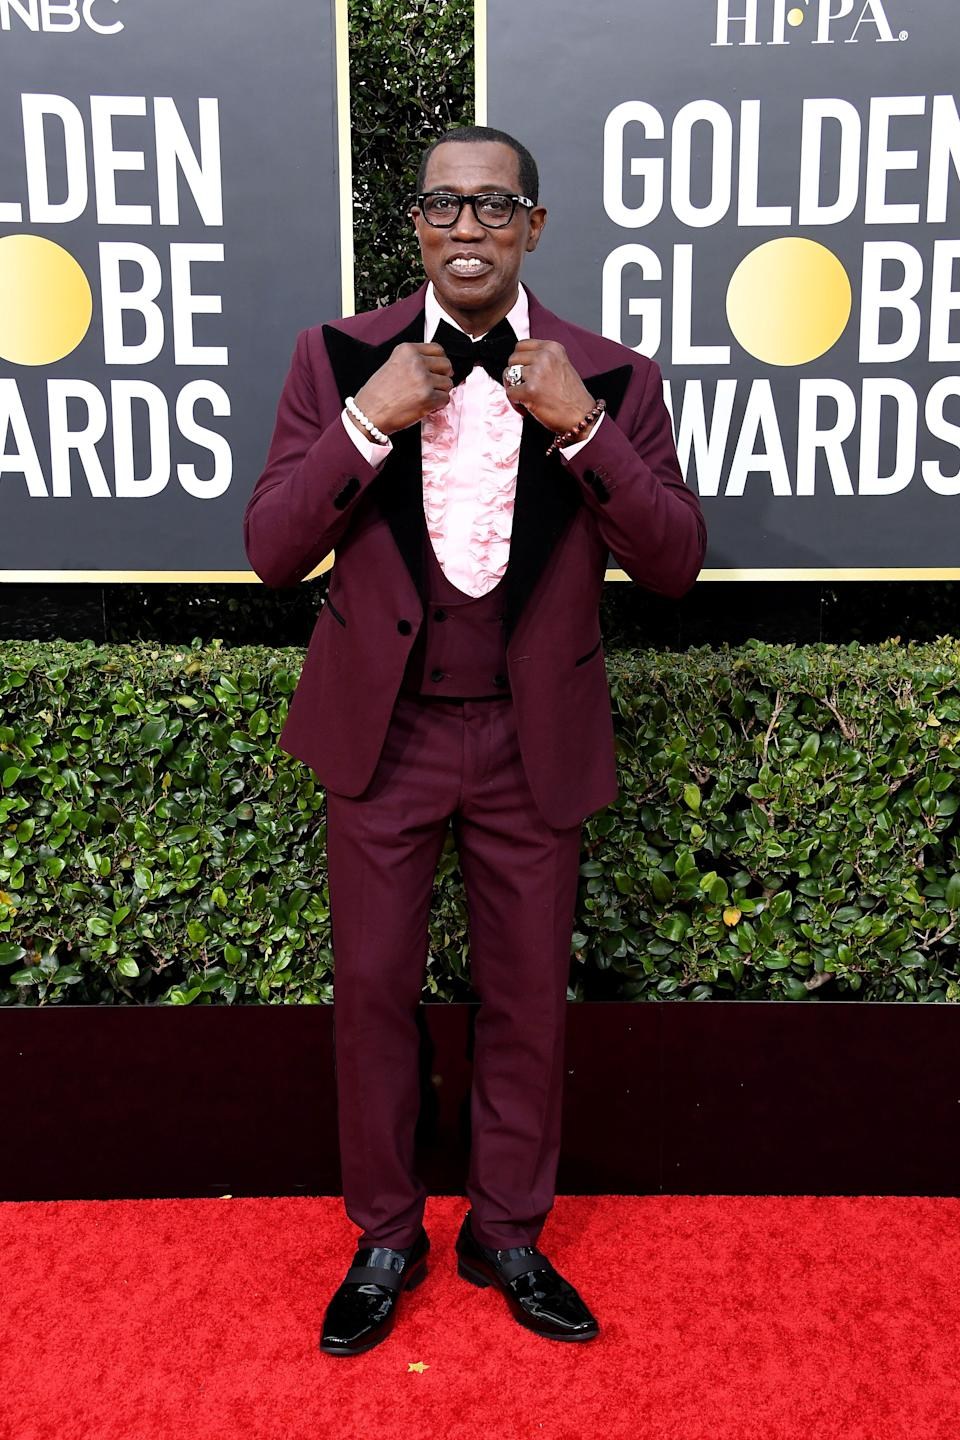 """Action star Wesley Snipes? Or Ron Weasley <a href=""""http://images5.fanpop.com/image/photos/28800000/ron-Weasley-yule-ball-the-weasley-family-28860588-400-400.jpg"""" target=""""_blank"""" rel=""""noopener noreferrer"""">circa the Yule Ball</a>?"""